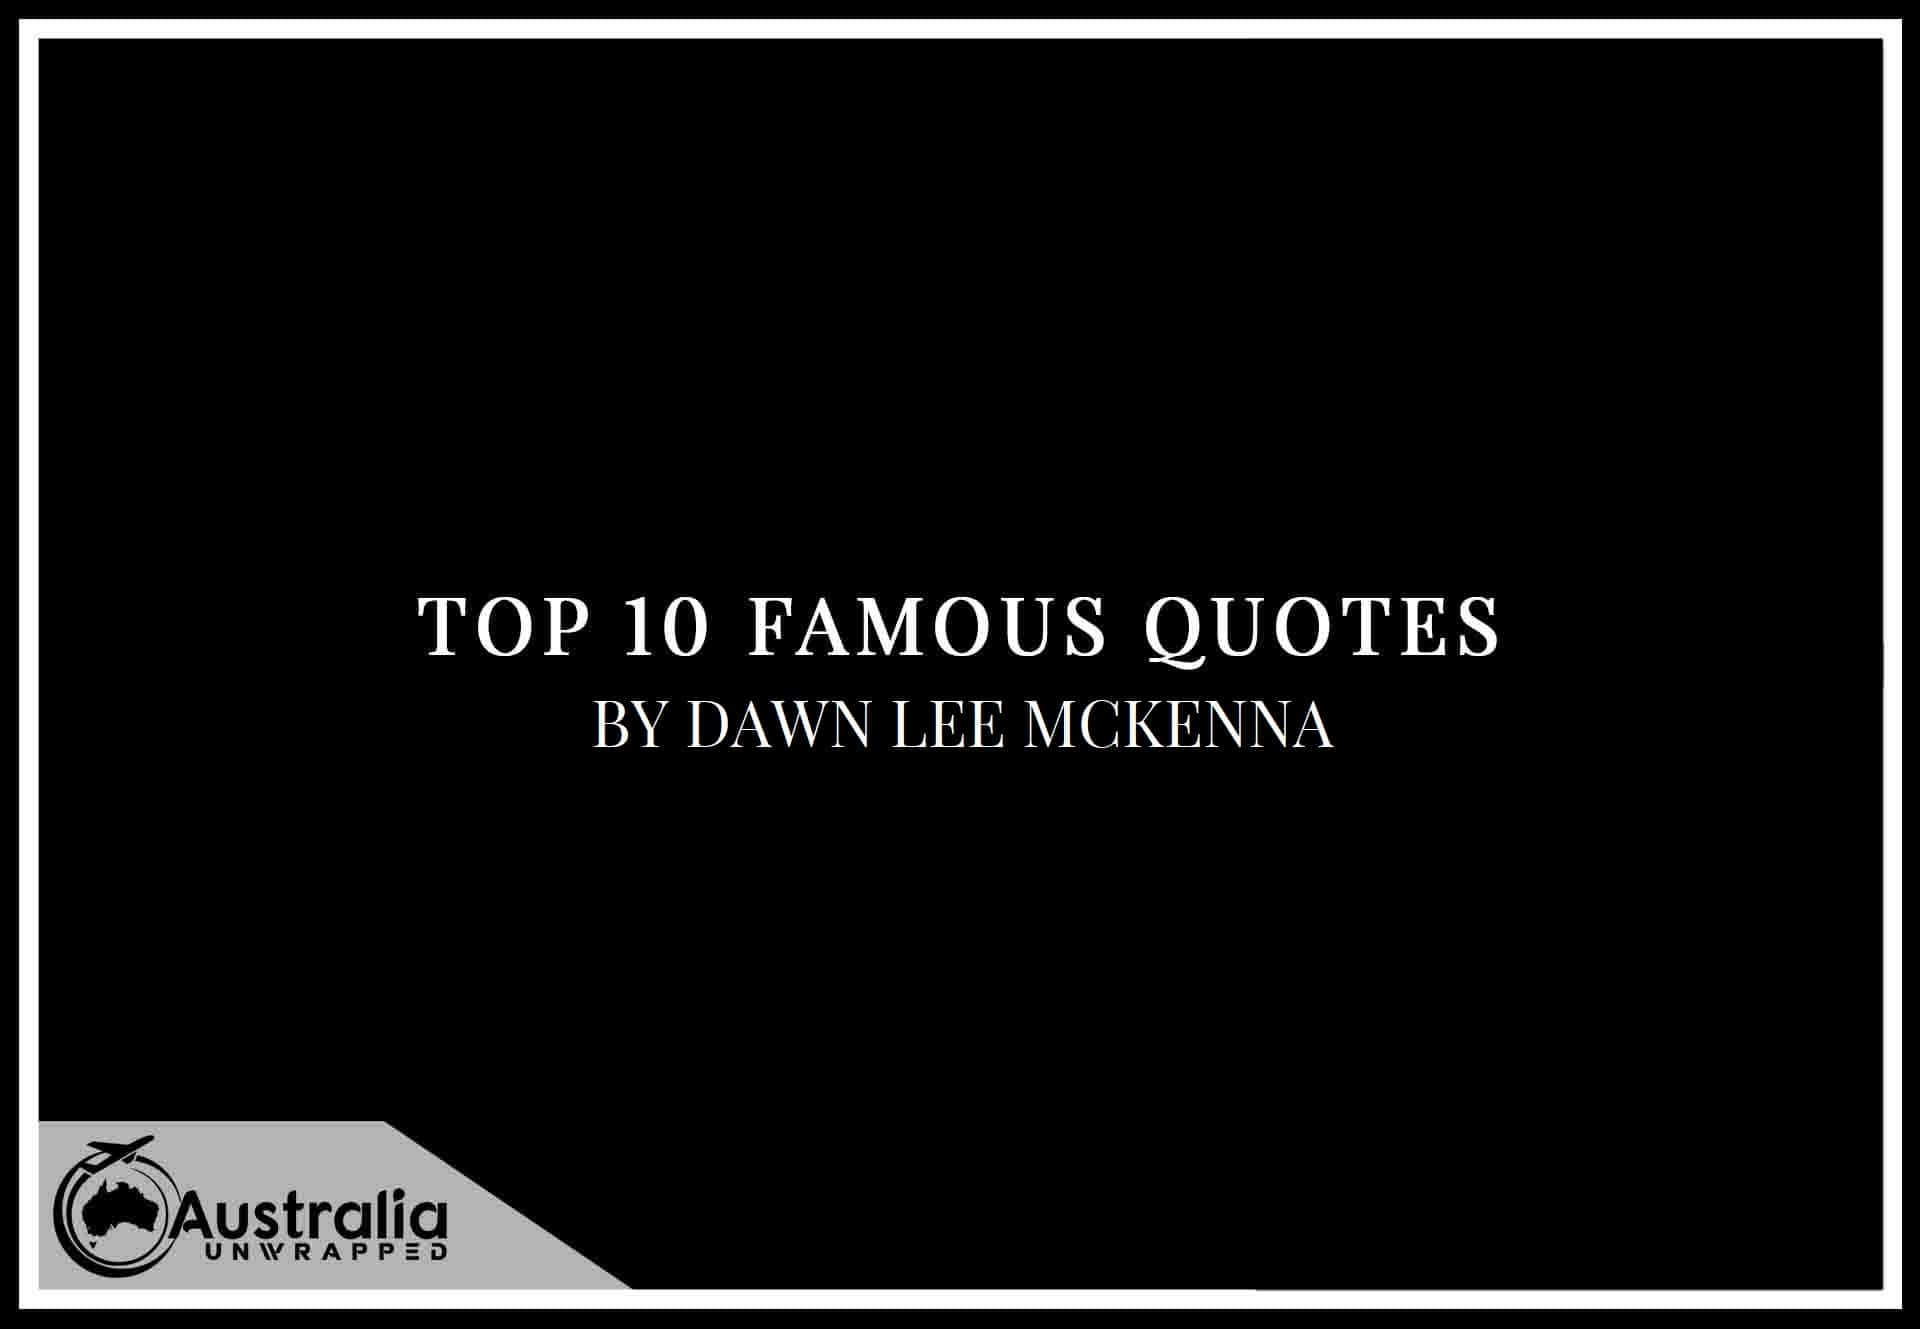 Top 10 Famous Quotes by Author Dawn Lee McKenna